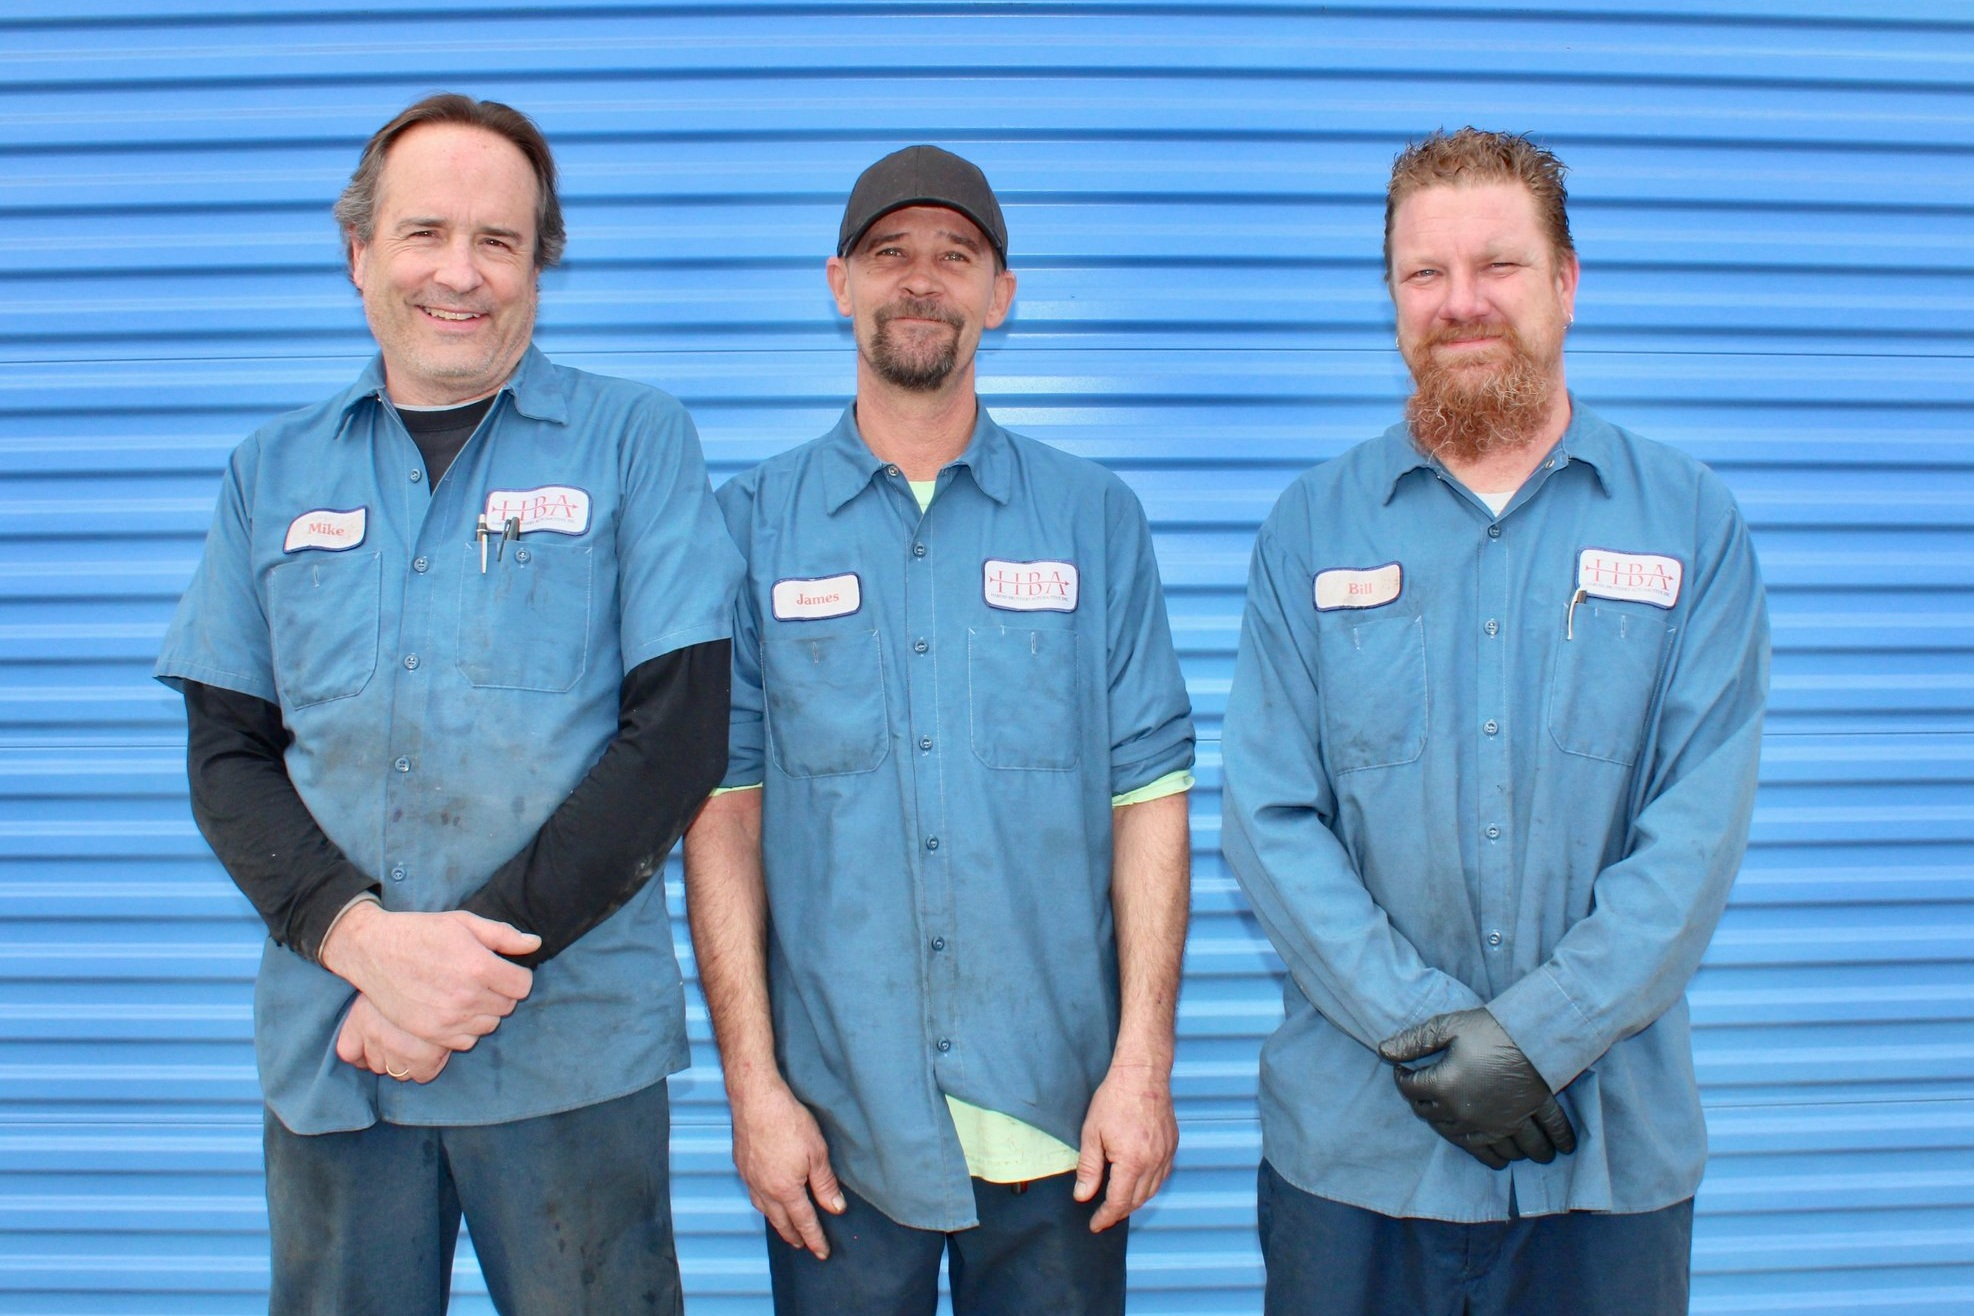 Quality - Our certified technicians have years of experience and they are ready to help.